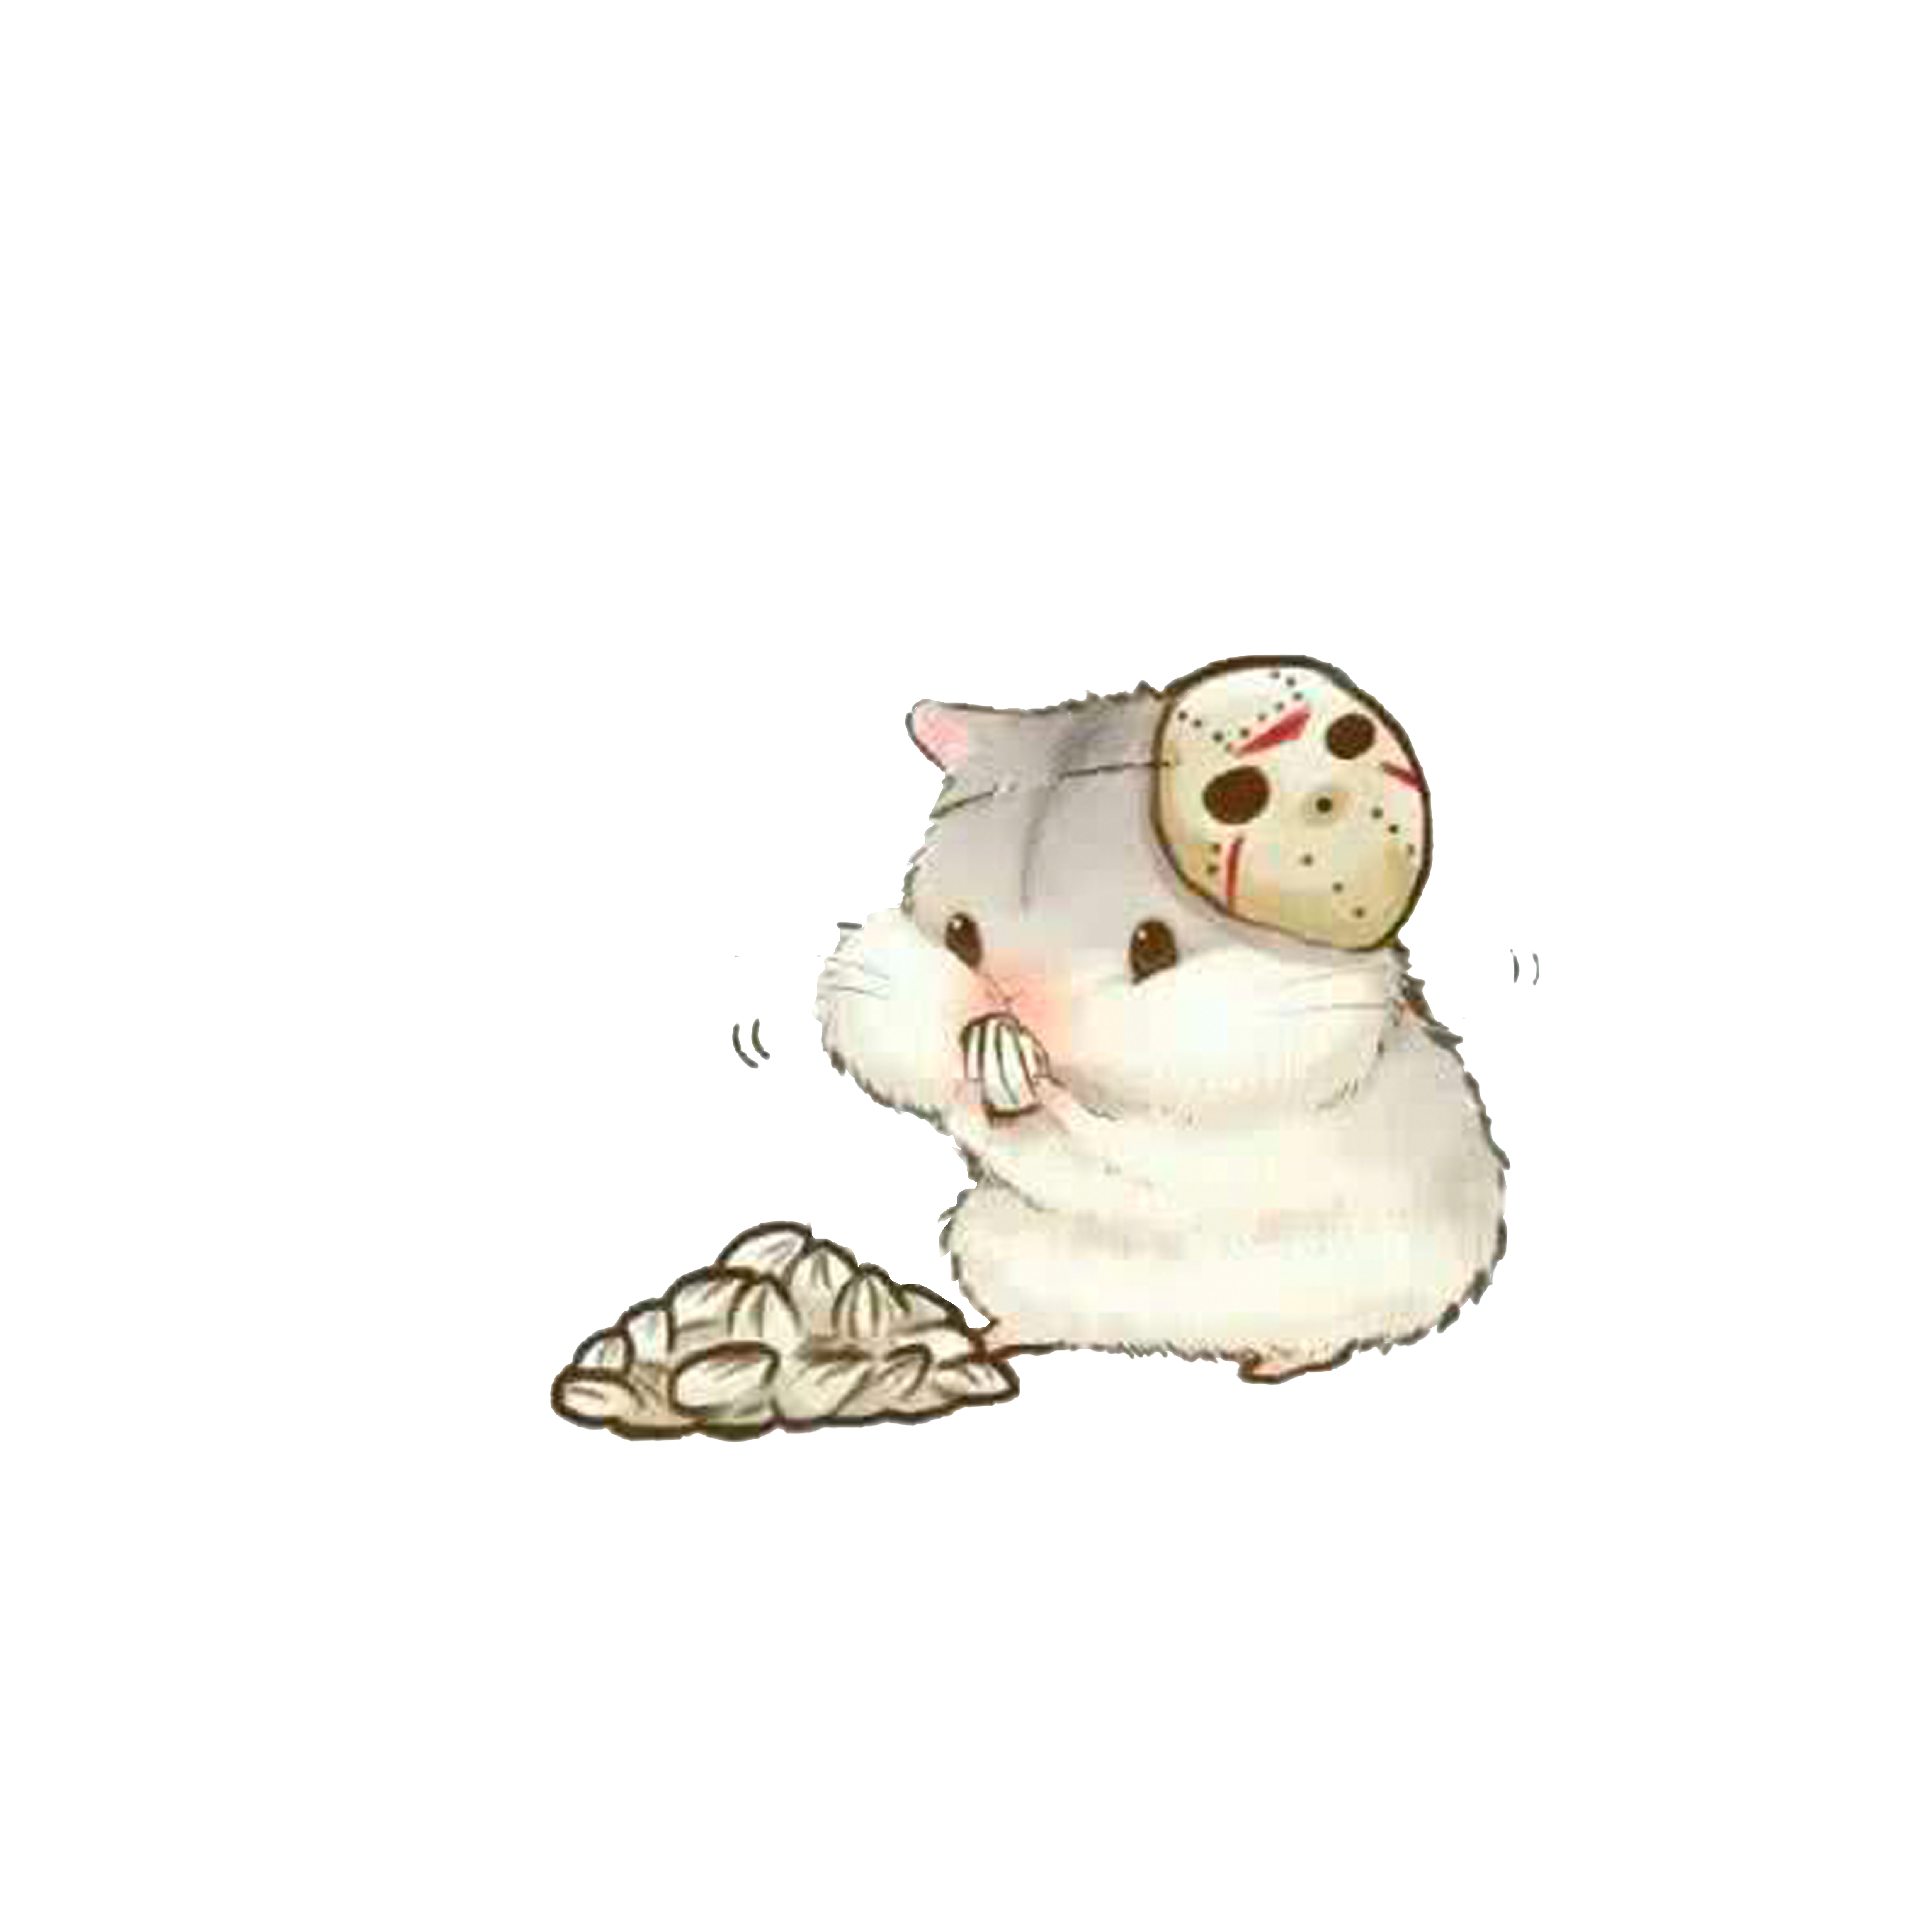 clipart transparent download Hamster clipart color. Drawing at getdrawings com